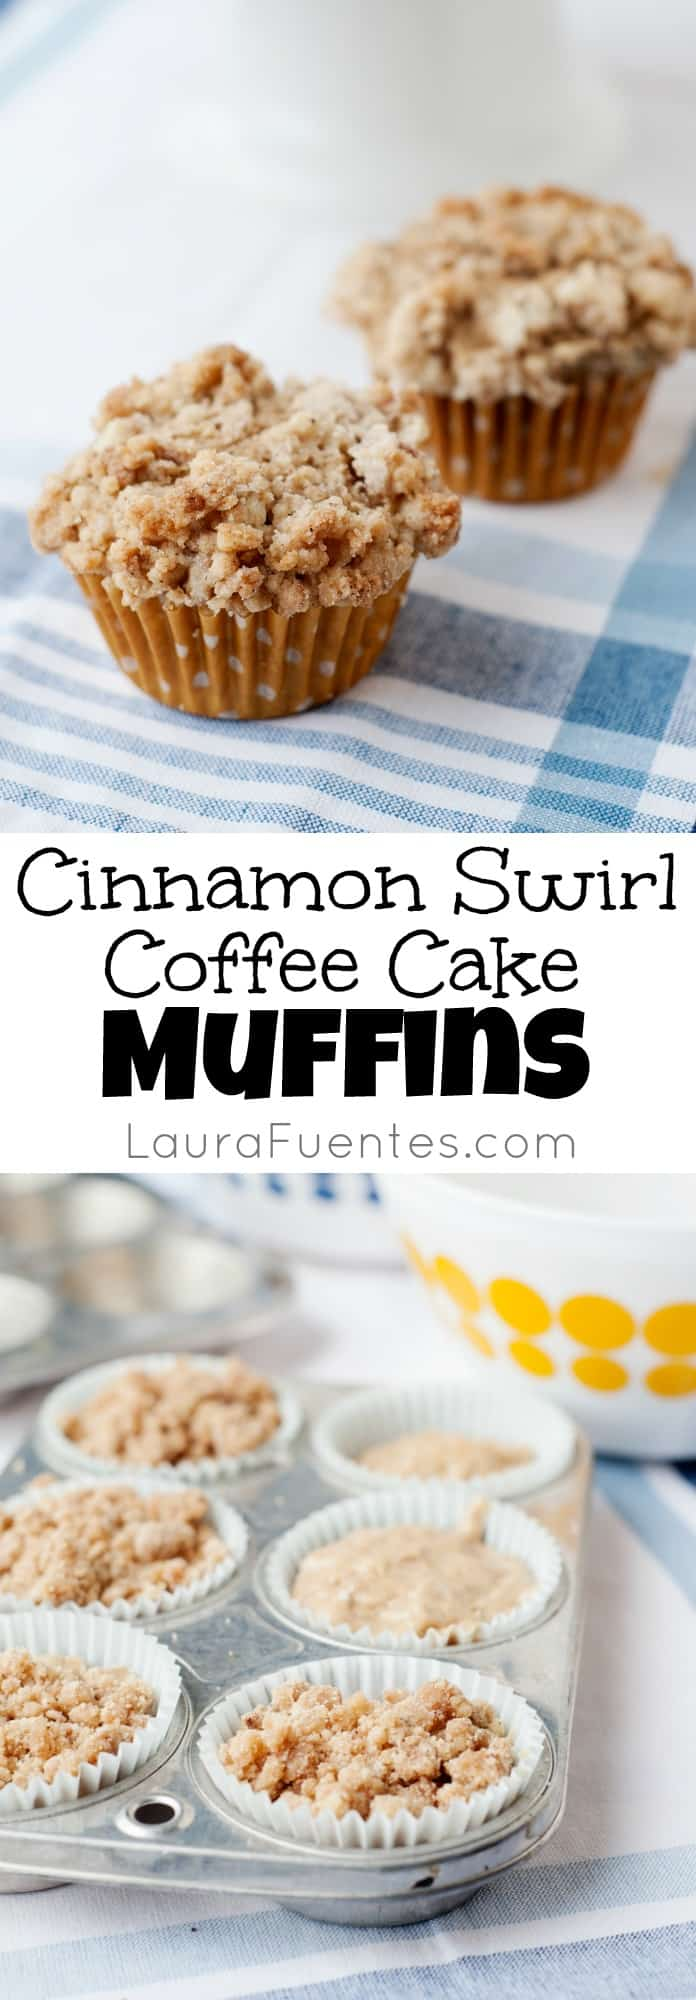 Cinnamon Swirl Coffee Cake Muffins- Make these delicious cafe inspired muffins right at home with your kids! They not only look delicious but your whole house will smell amazing and full of sweet cinnamon.